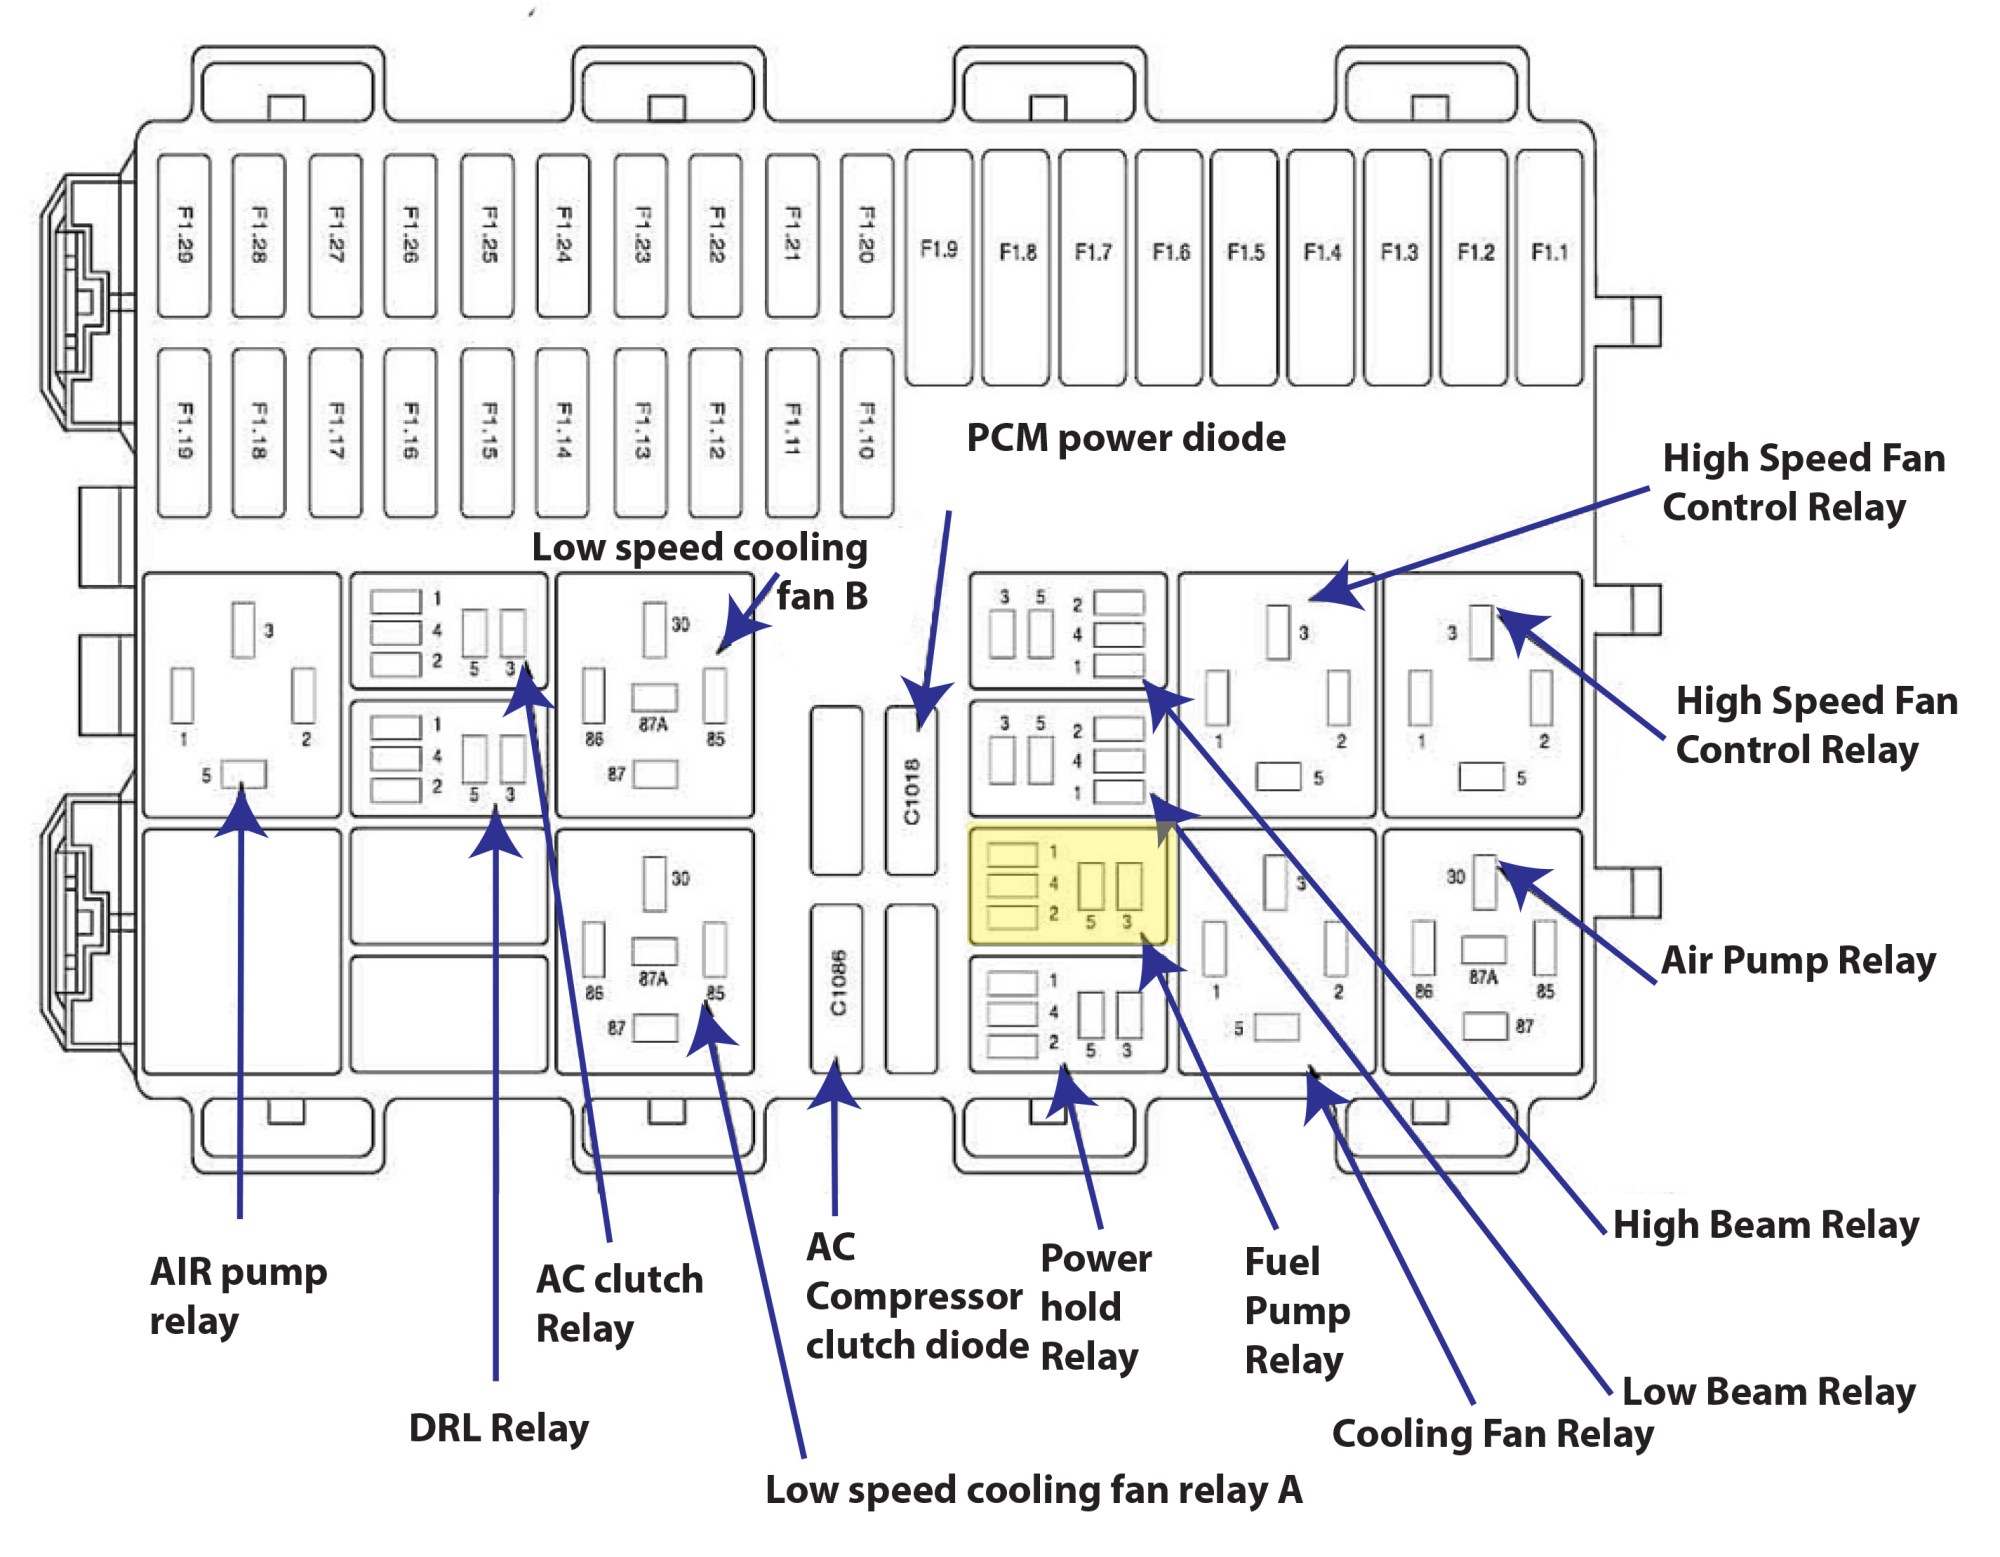 hight resolution of fuse box diagram further 2003 ford focus air conditioning diagramheating and air fuse box wiring diagram